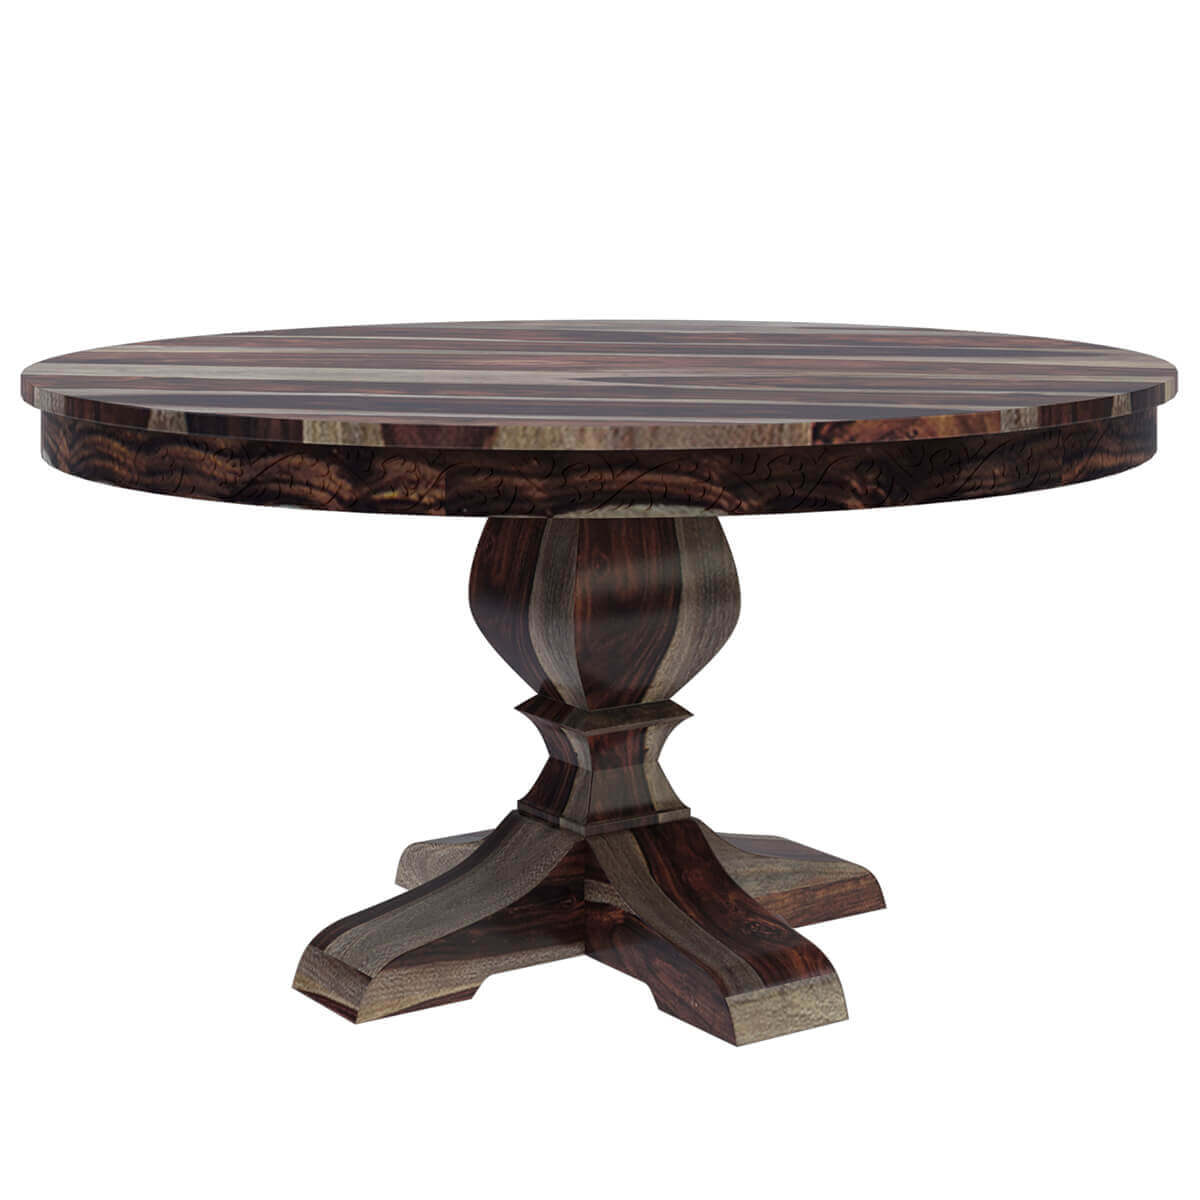 Hosford handcrafted solid wood 60 round pedestal dining table for Pedestal table